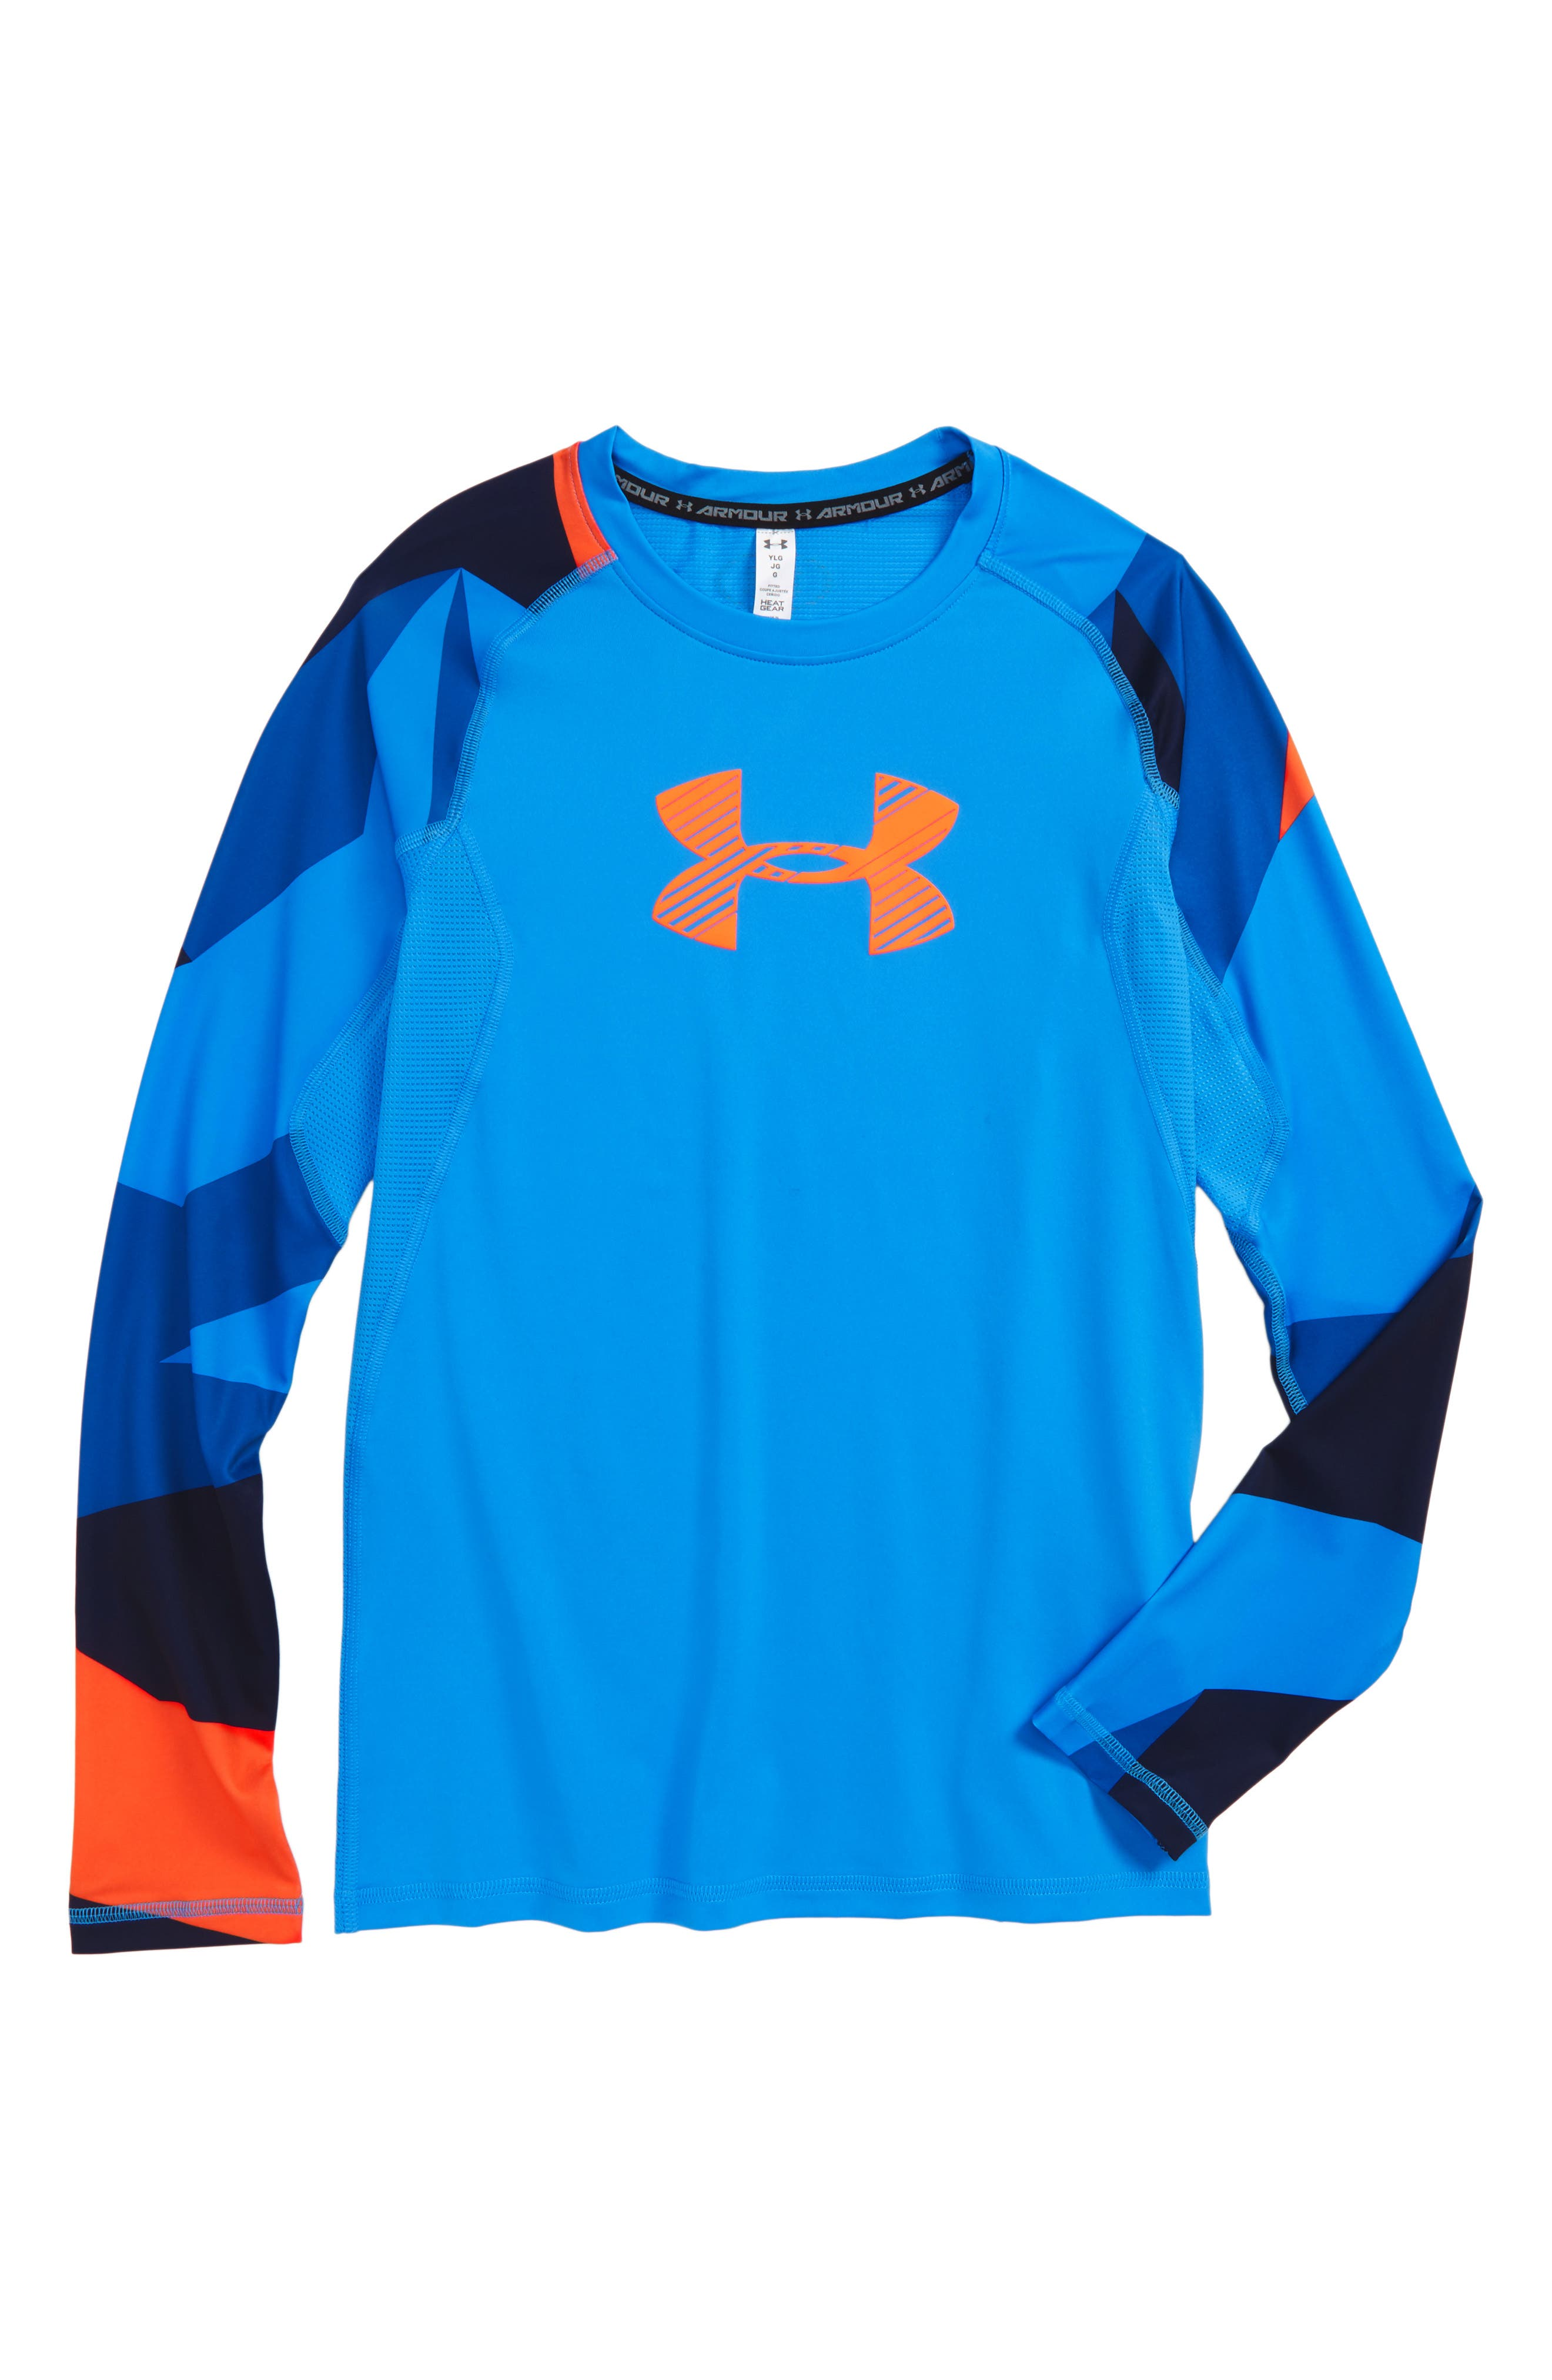 Novelty HeatGear<sup>®</sup> Shirt,                         Main,                         color, Blue/ Magma Orange